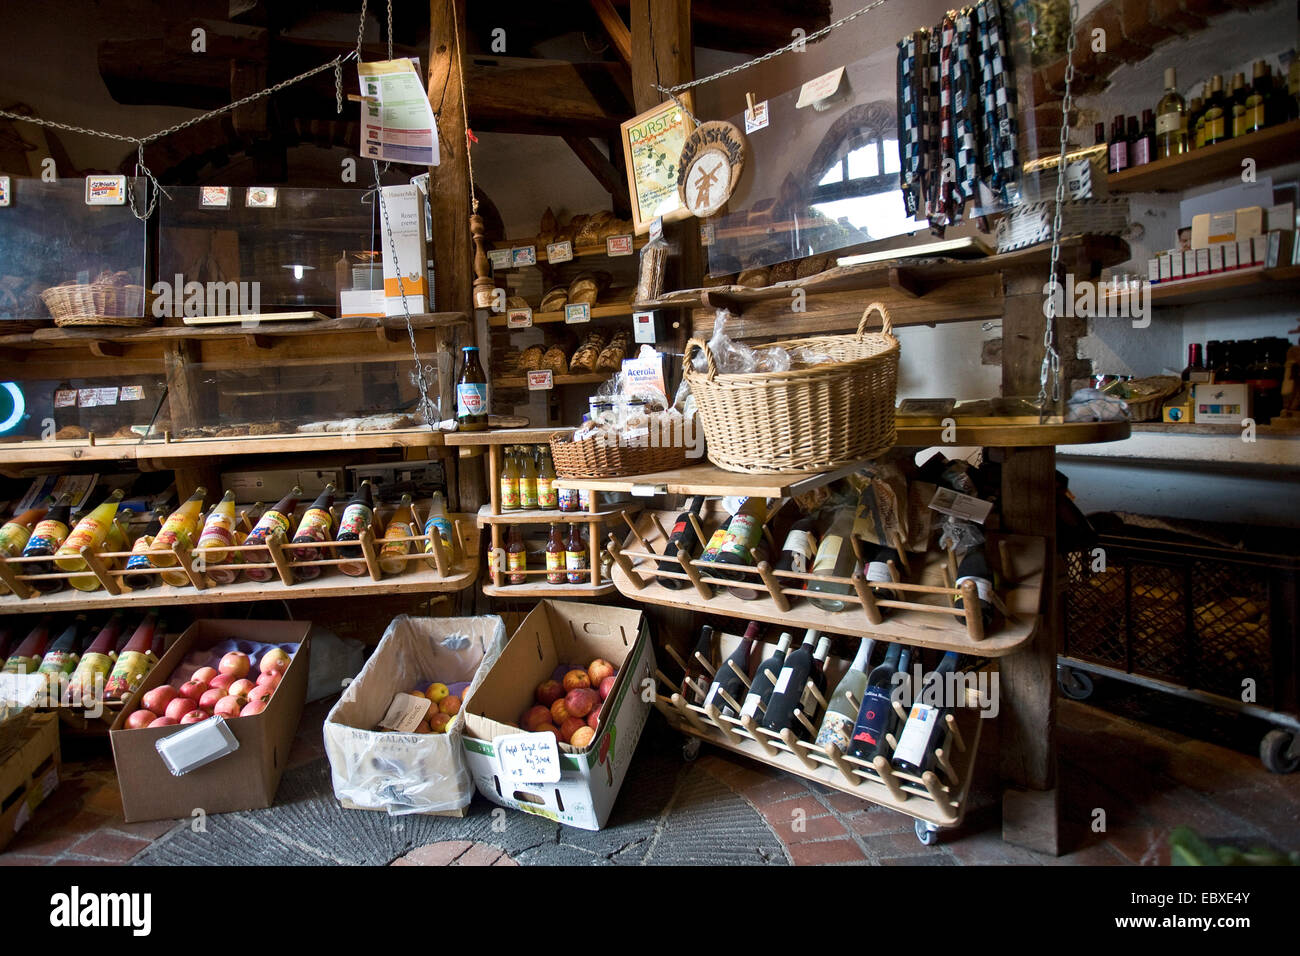 in Kriemhild-Muehle, Kriemhild mill, shop with organic products, Germany, North Rhine-Westphalia, Ruhr Area, Xanten - Stock Image